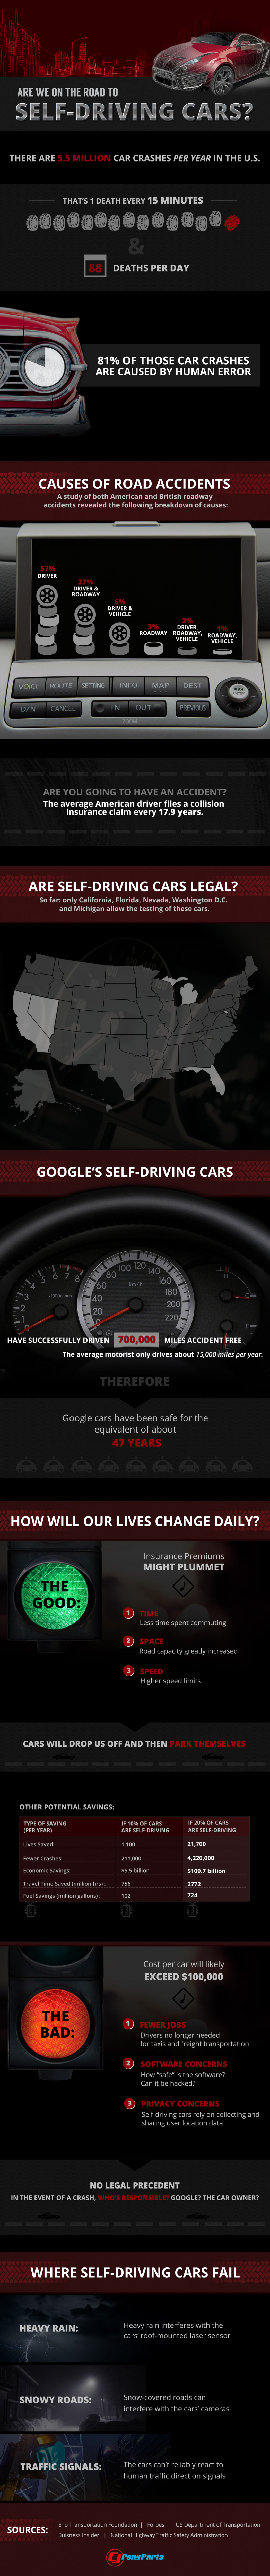 Are We On The Road to Self-Driving Cars? Infographic